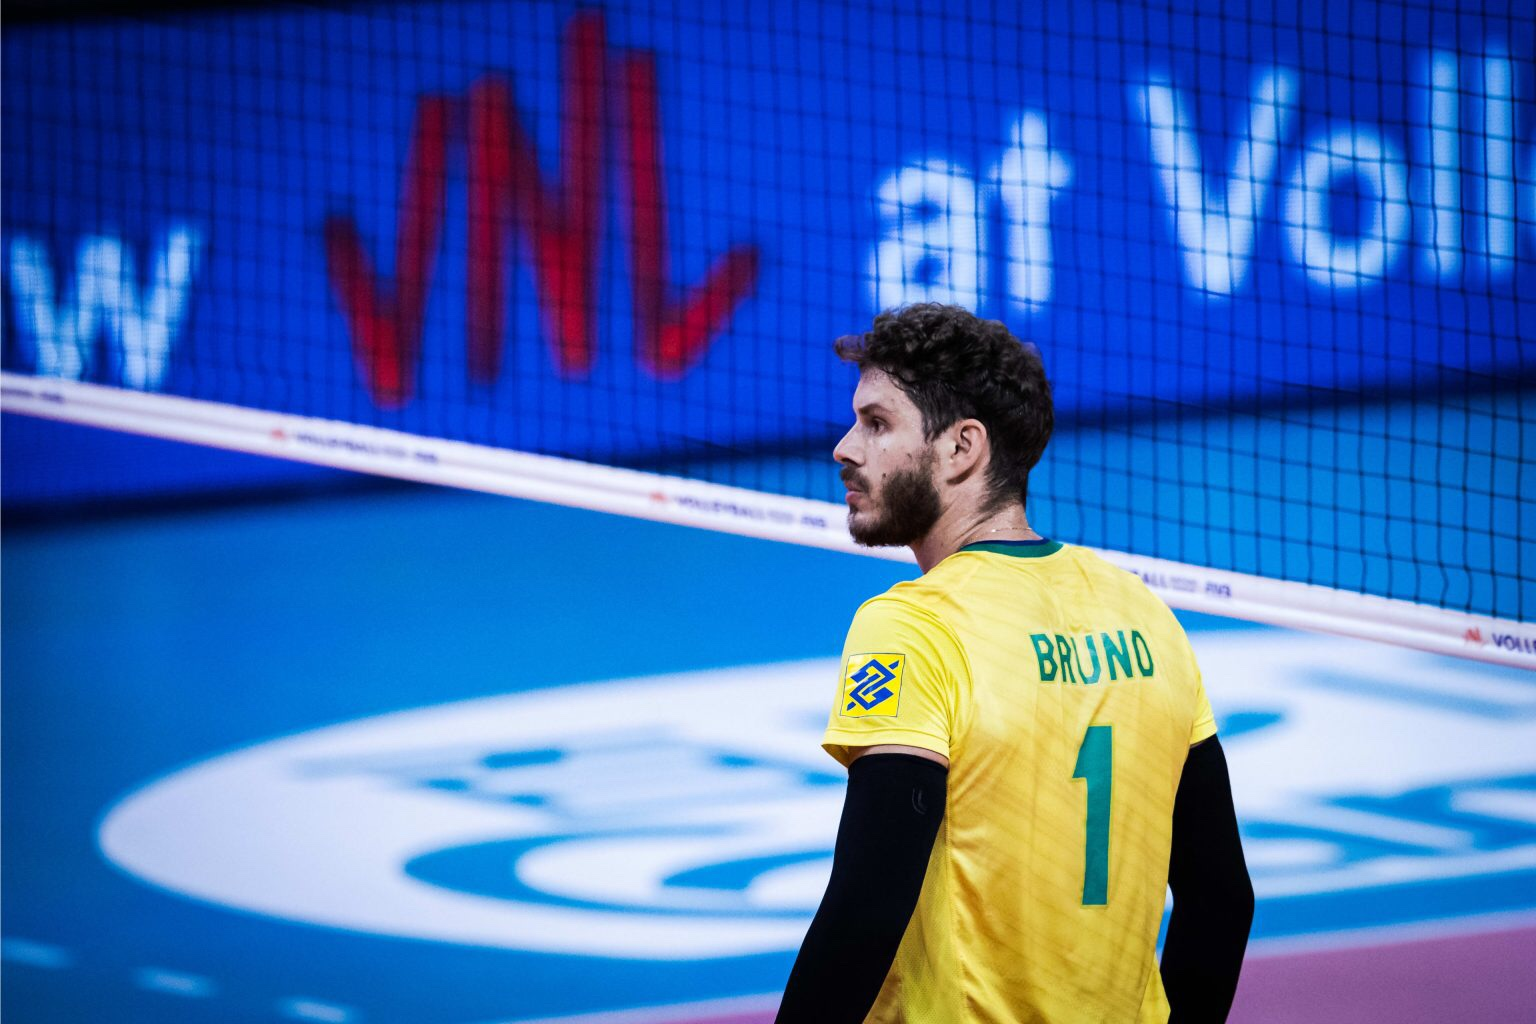 Another volleyball player at opening ceremony of Tokyo 2020: Bruninho